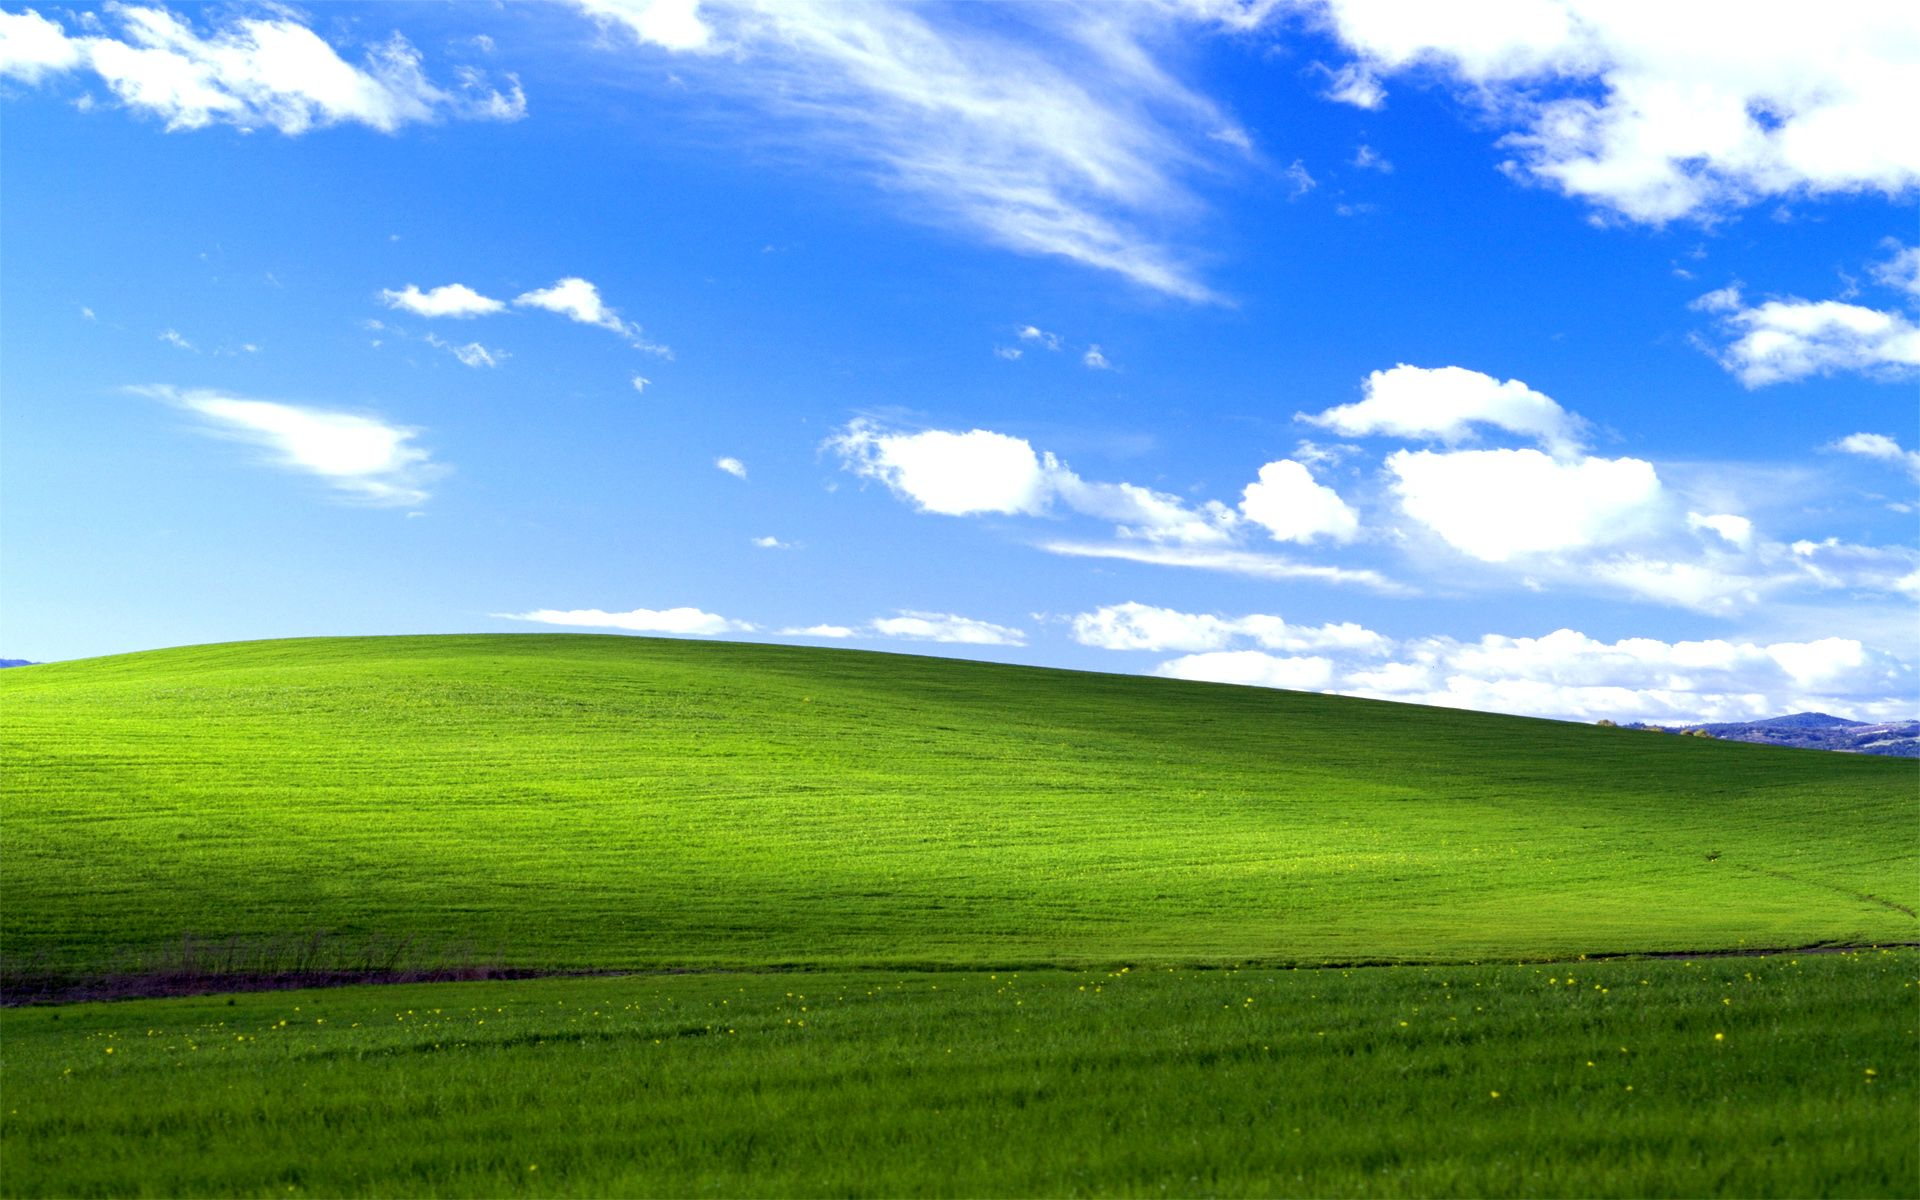 Windows Xp Bliss Wallpapers Hd Wallpapers In 2020 Windows Xp Windows Wallpaper Backgrounds Desktop